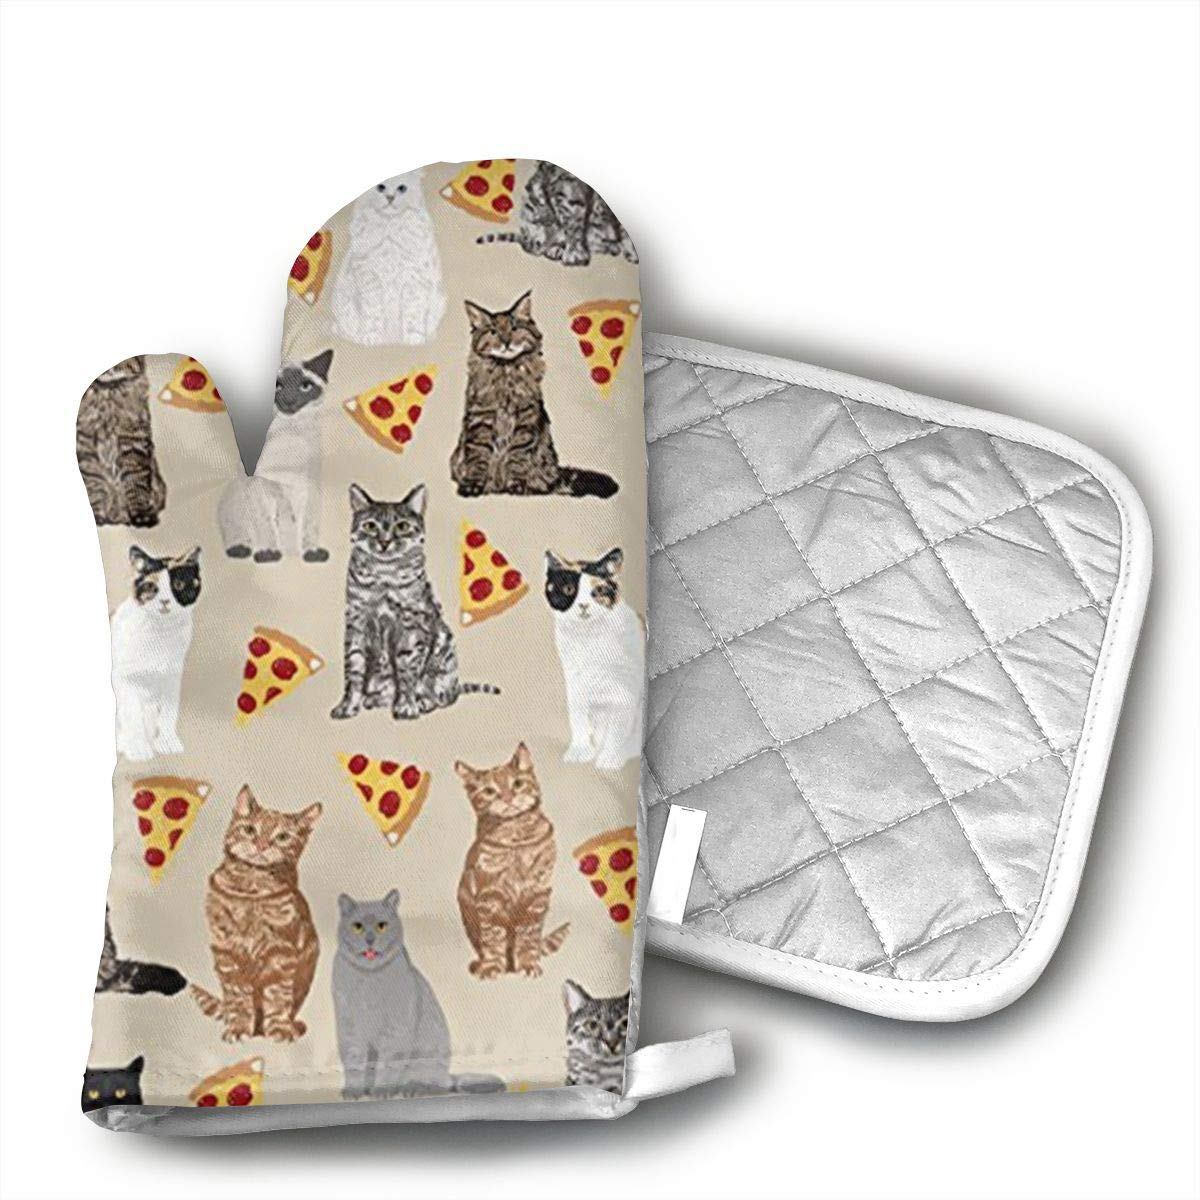 UYRHFS Cute Cats with Pizzas Oven Mitts and Pot Holder Kitchen Set with, Heat Resistant, Oven Gloves and Pot Holders 2pcs Set for BBQ Cooking Baking